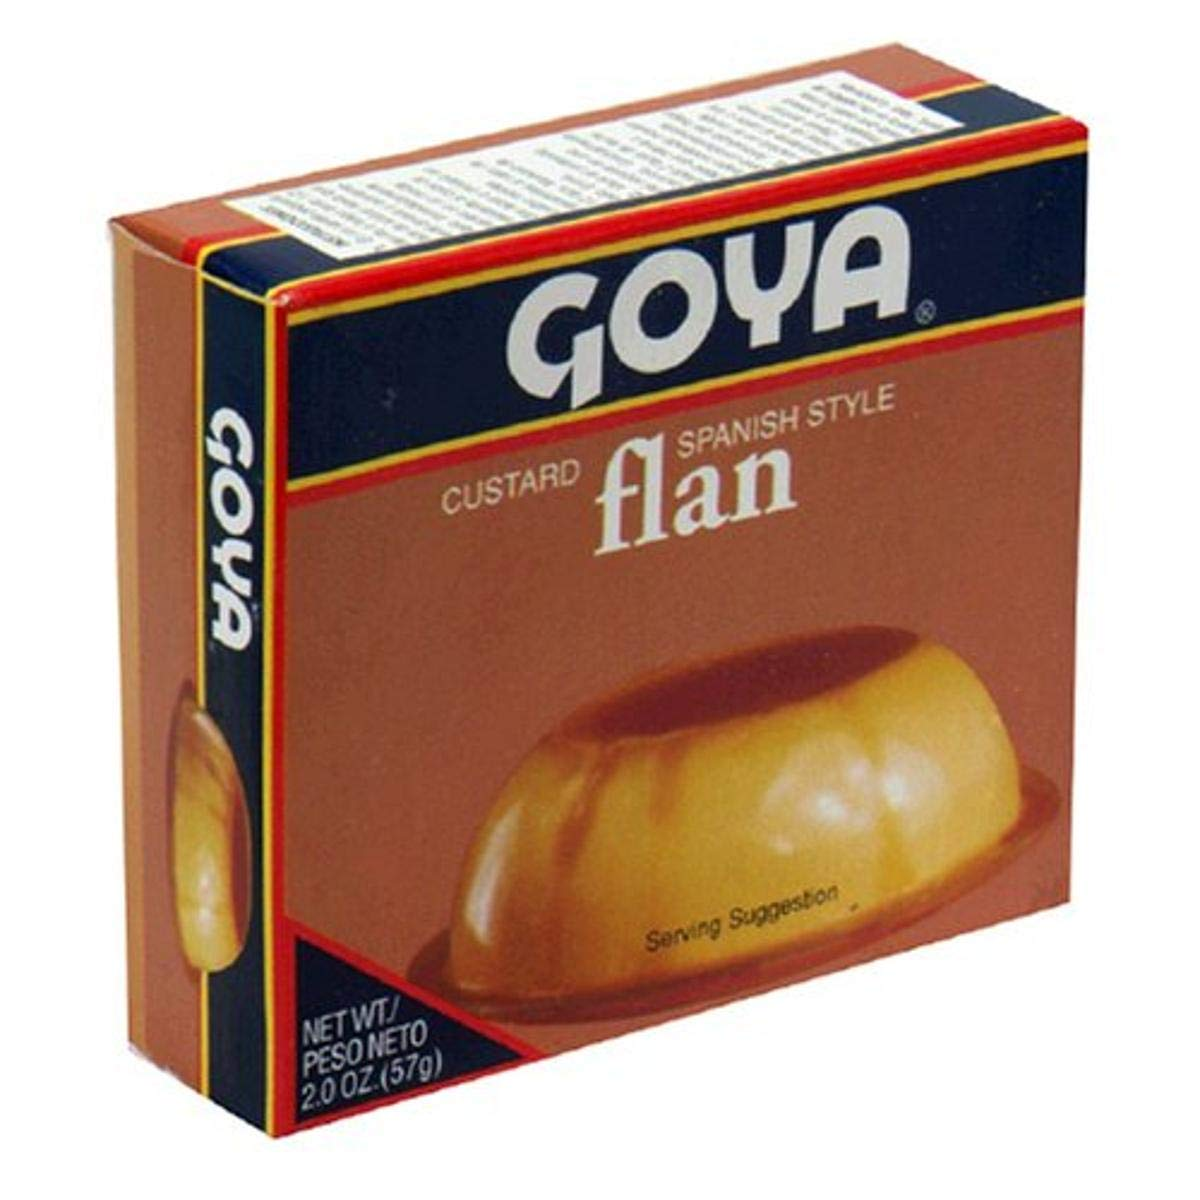 Goya Flan Custard 2-Ounce 36 OFFicial Max 63% OFF store of Boxes Pack